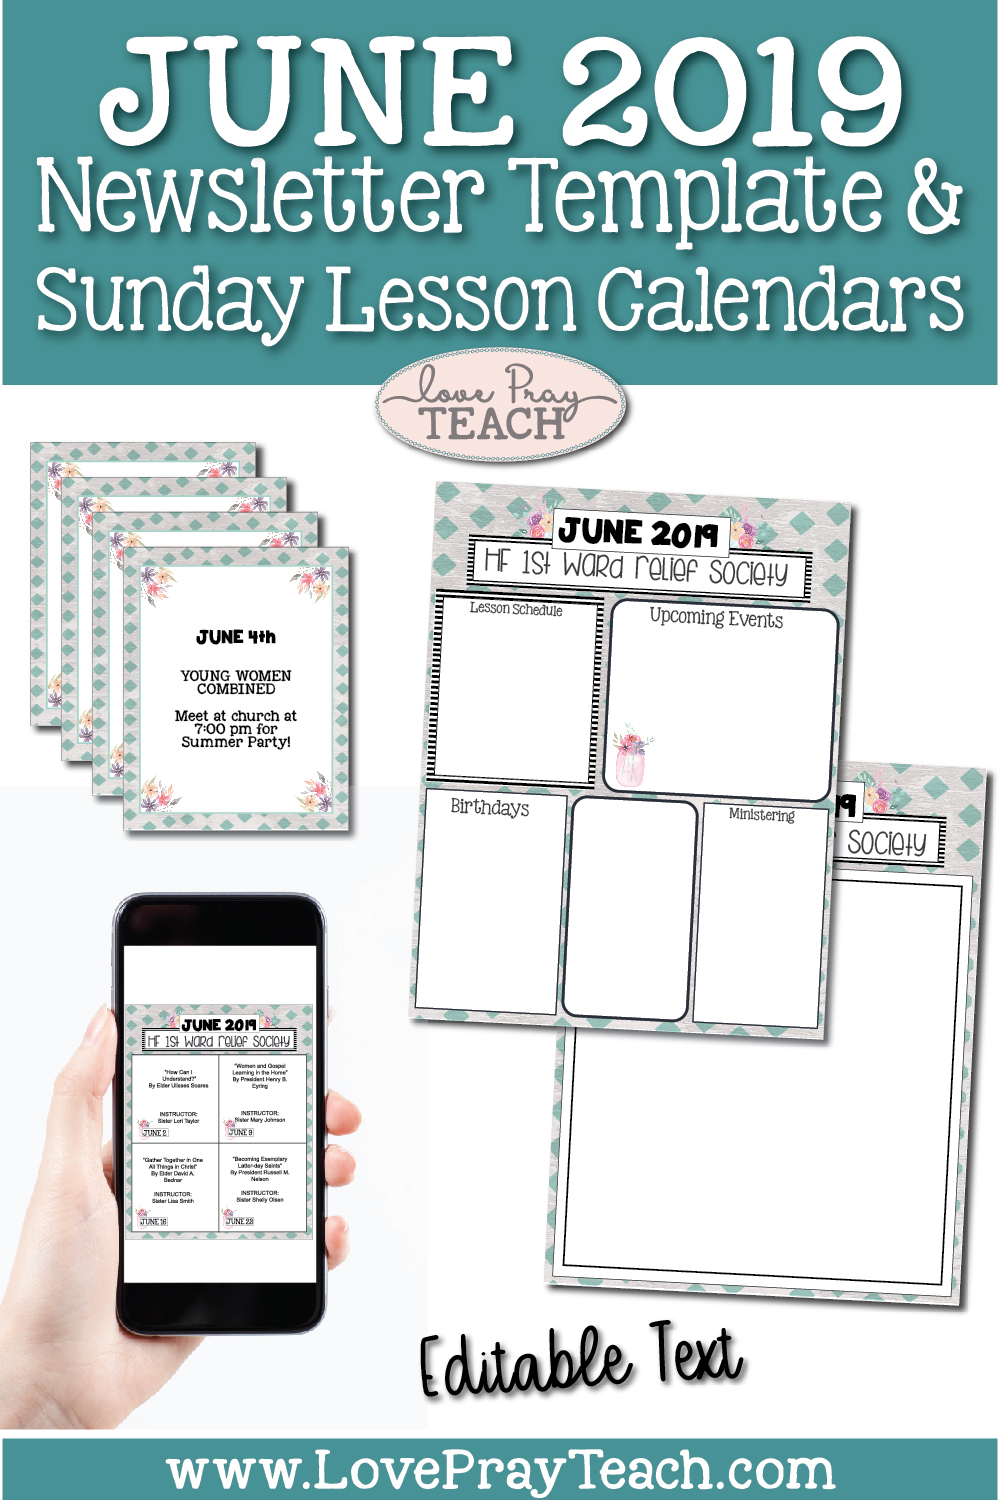 June 2019 Editable Newsletter Template and Sunday Lesson Calendars for Relief Society and Young Women  |  Text, Email, or Post to Social Media!  |  Love Pray Teach